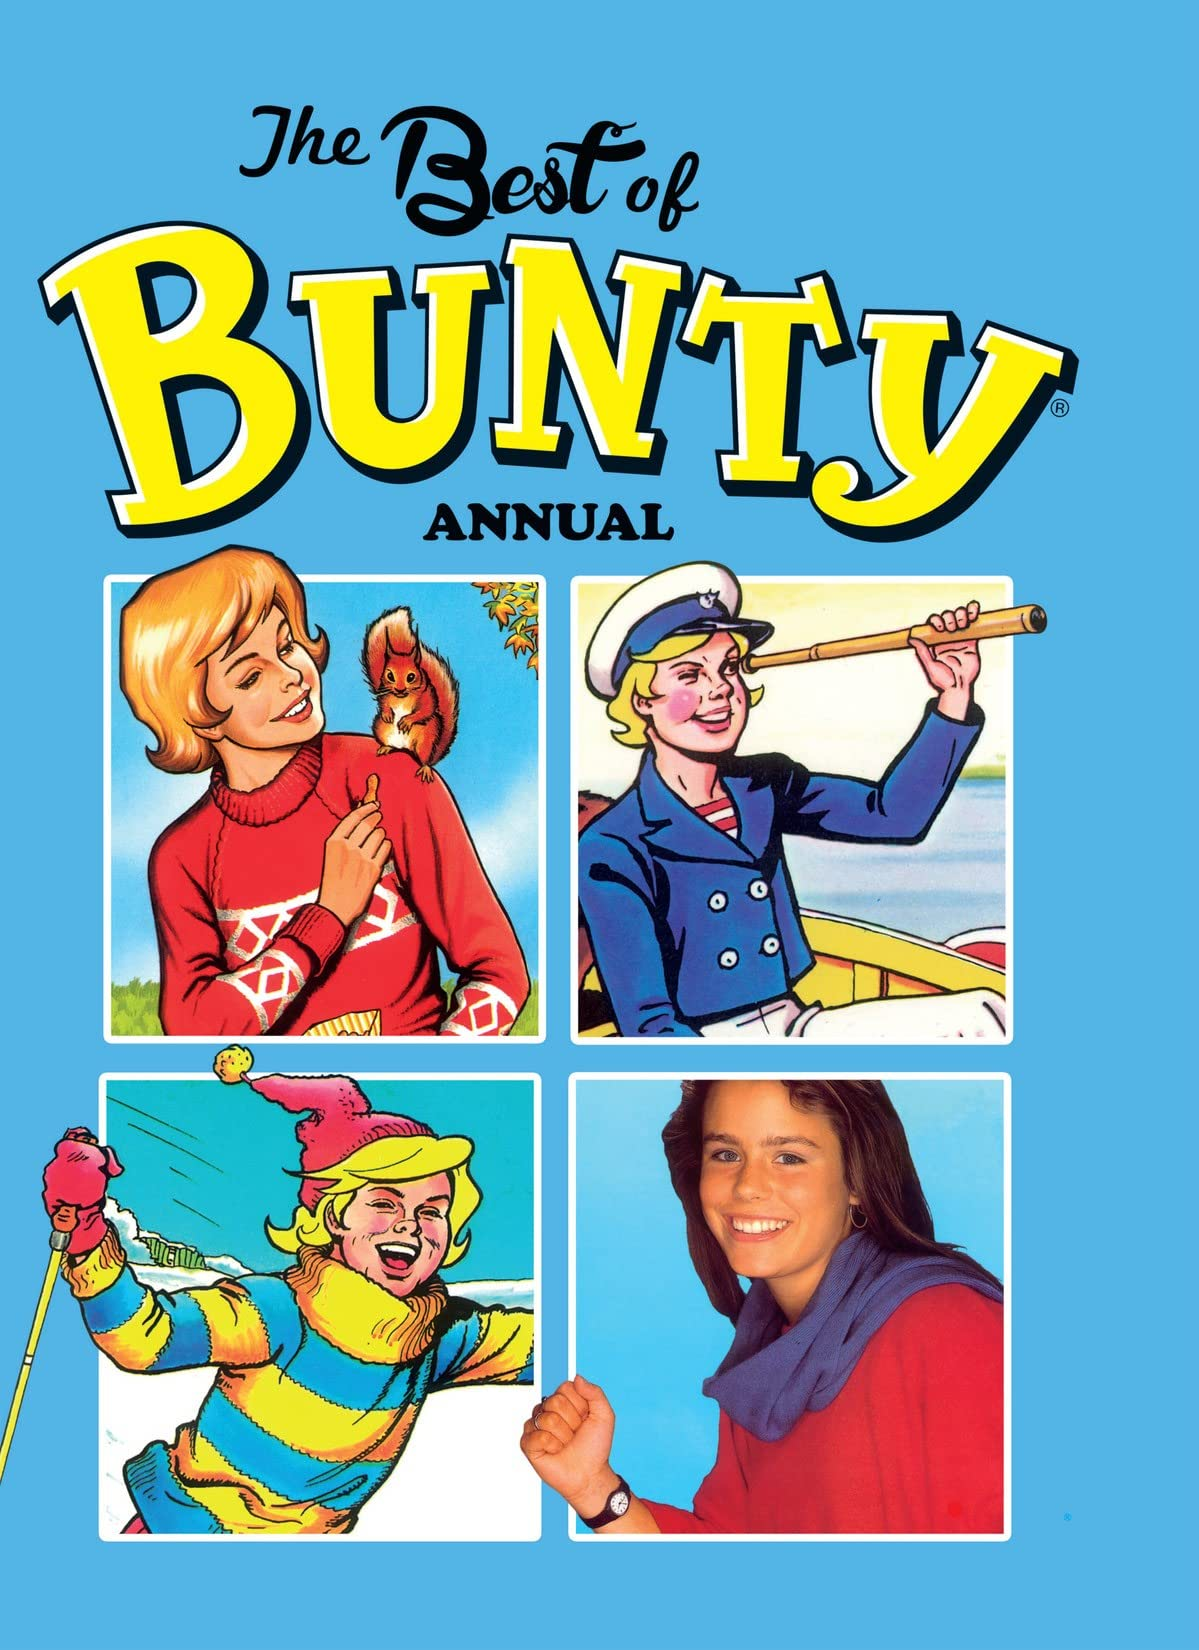 Retro Classics: The Best of Bunty Annual